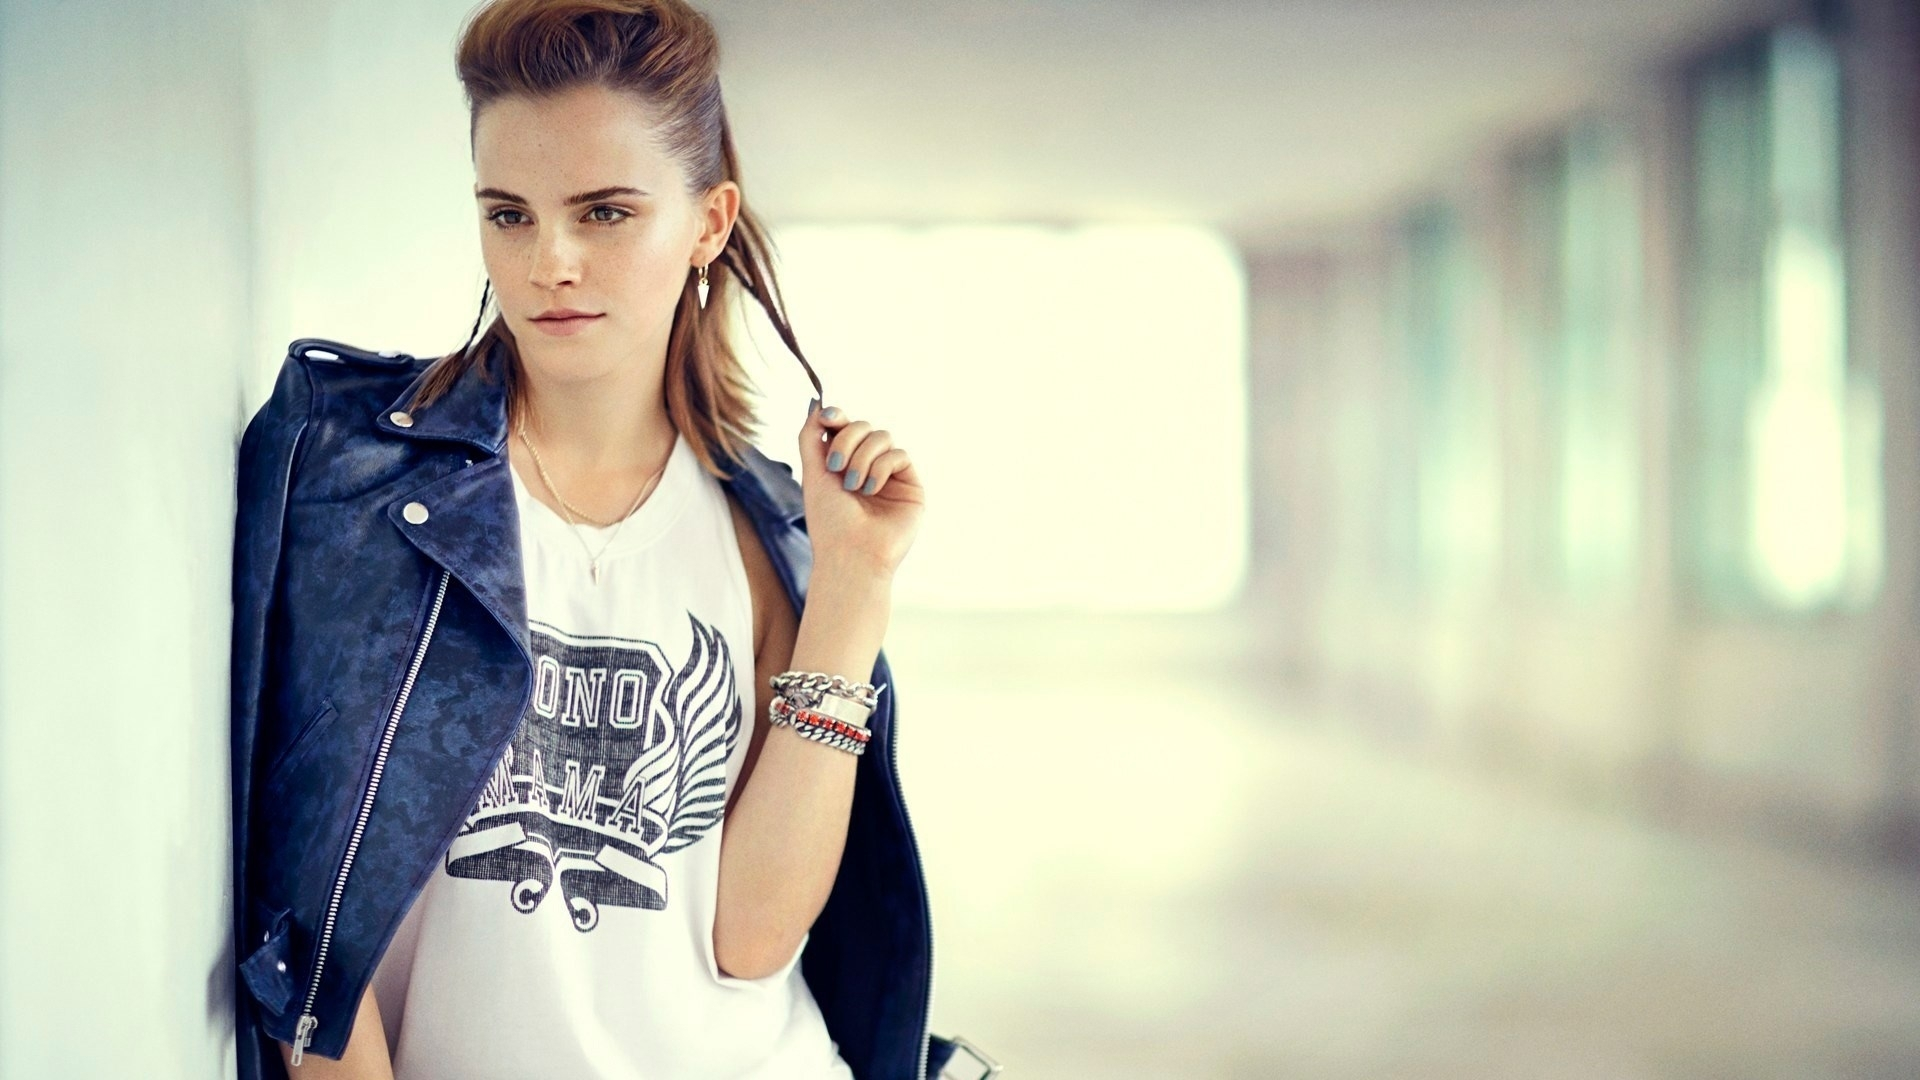 emma watson stylish pose look background mobile hd free desktop images